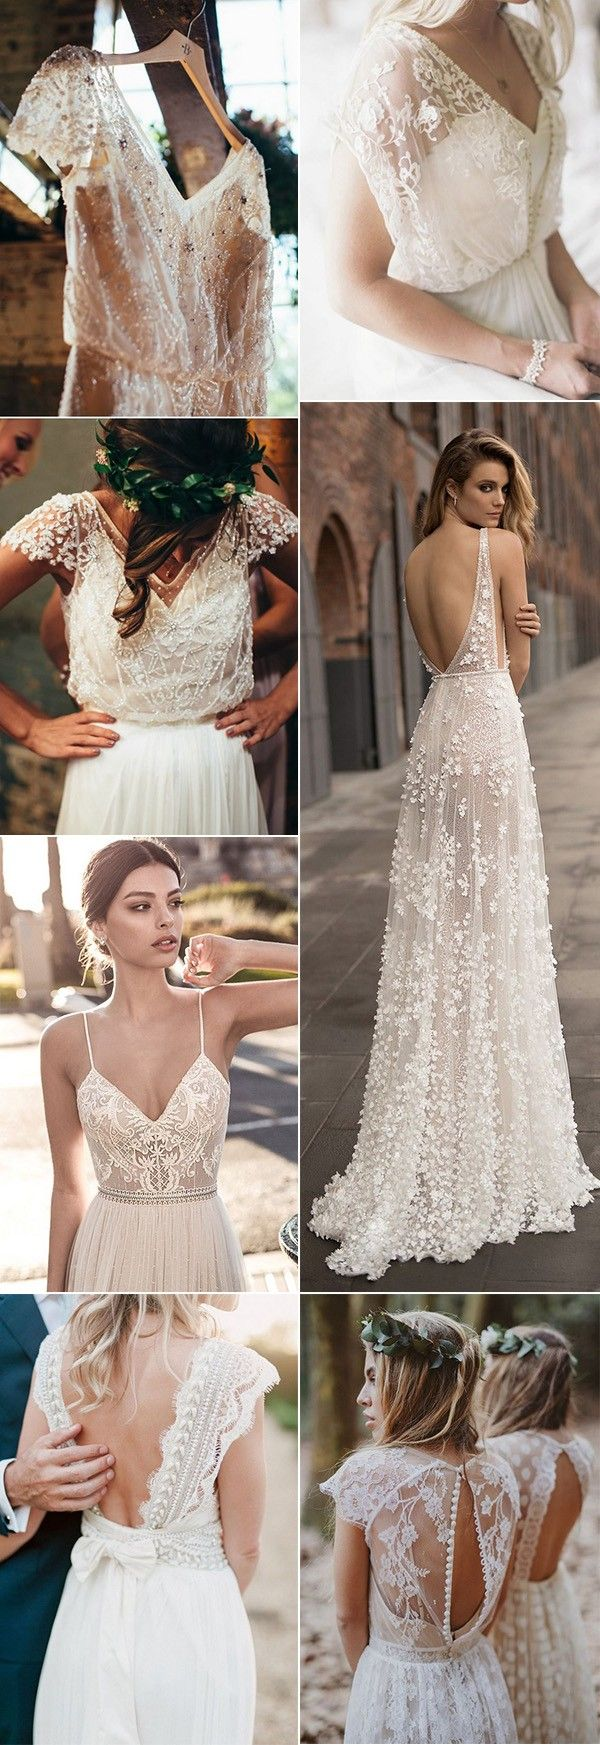 trending boho wedding dresses for 2018 #weddingdresses #weddingdress #bohowedding